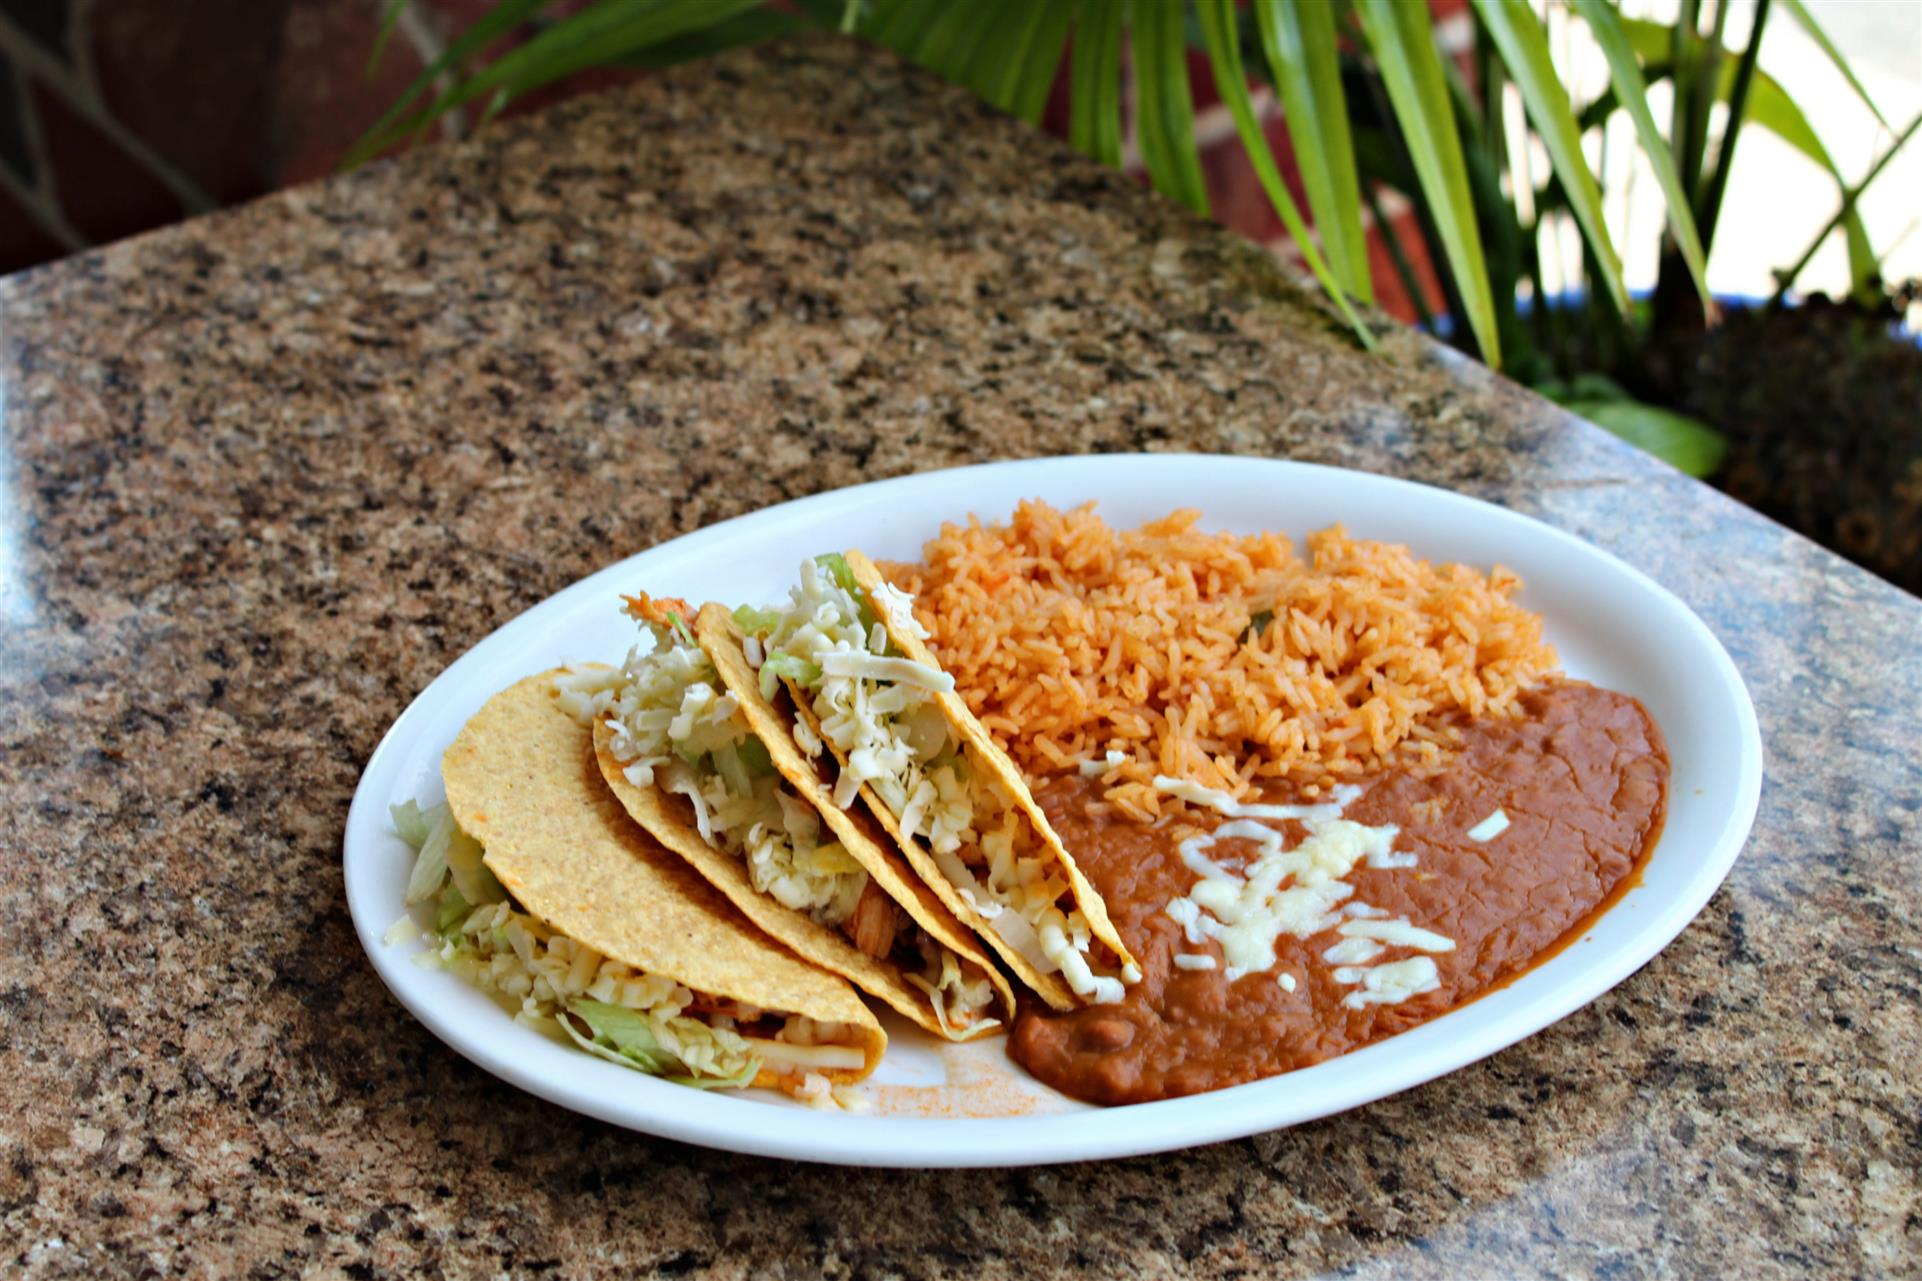 three hard shell tacos filled with beef, cheese and lettuce with a side of rice and beans